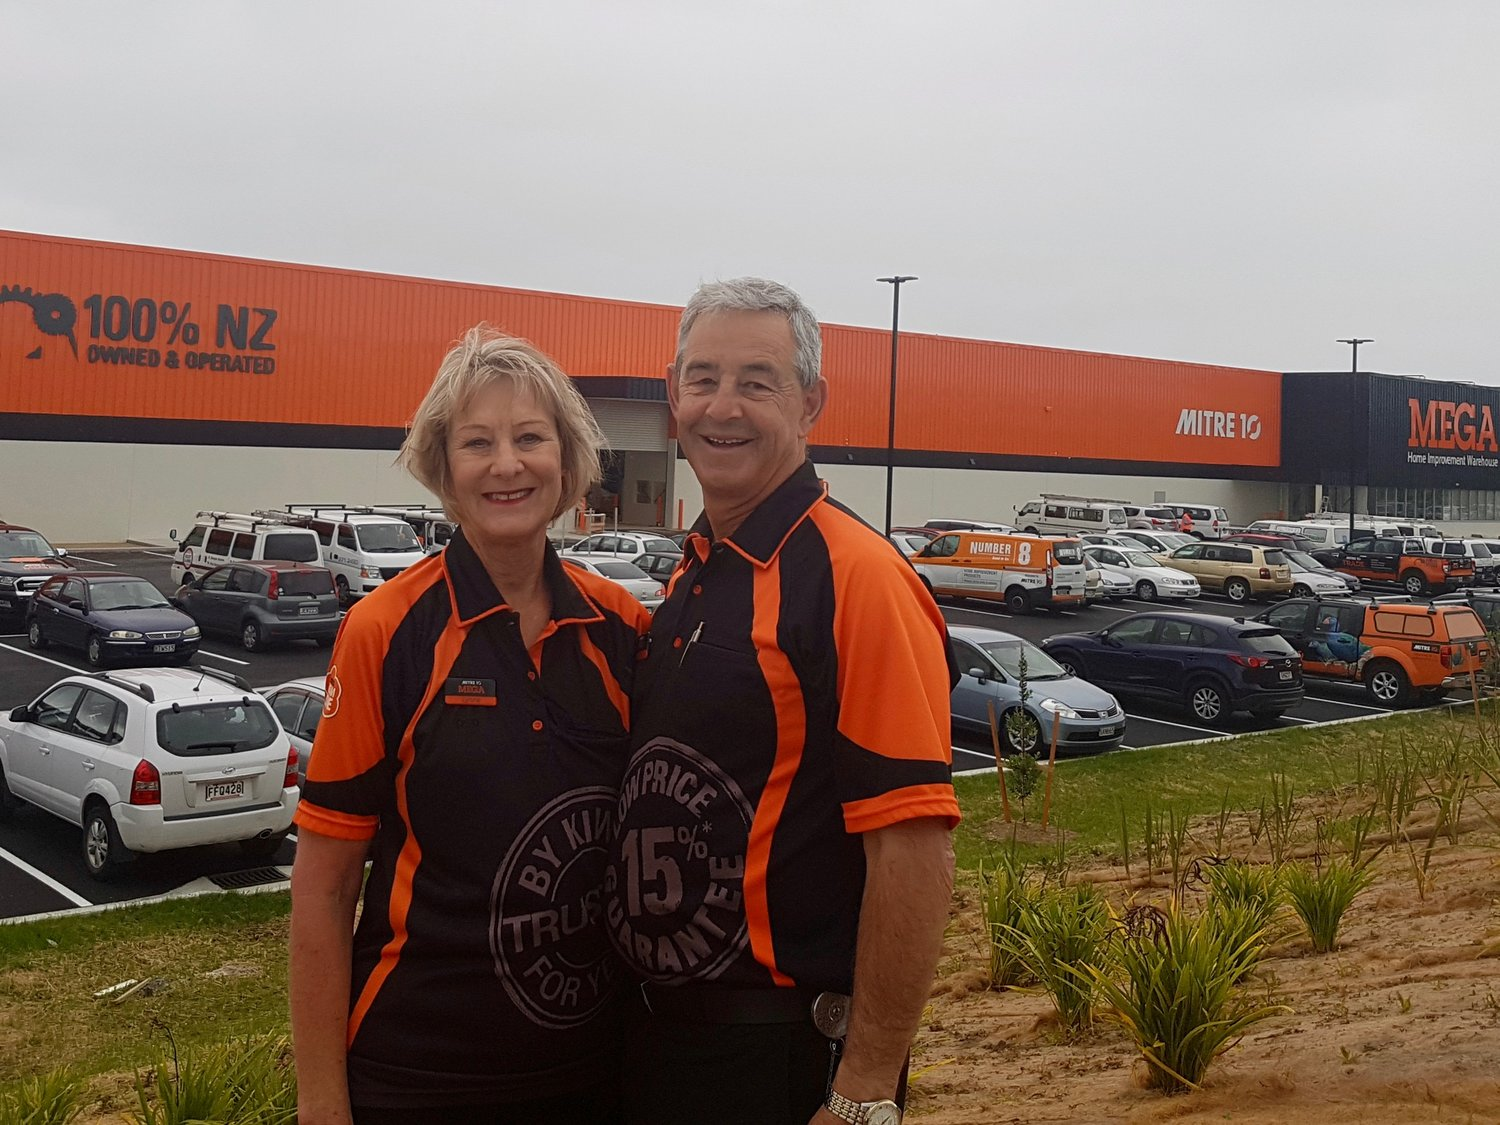 mitre 10 mega brings trade supplies to ruakura — mitre 10 trade blog